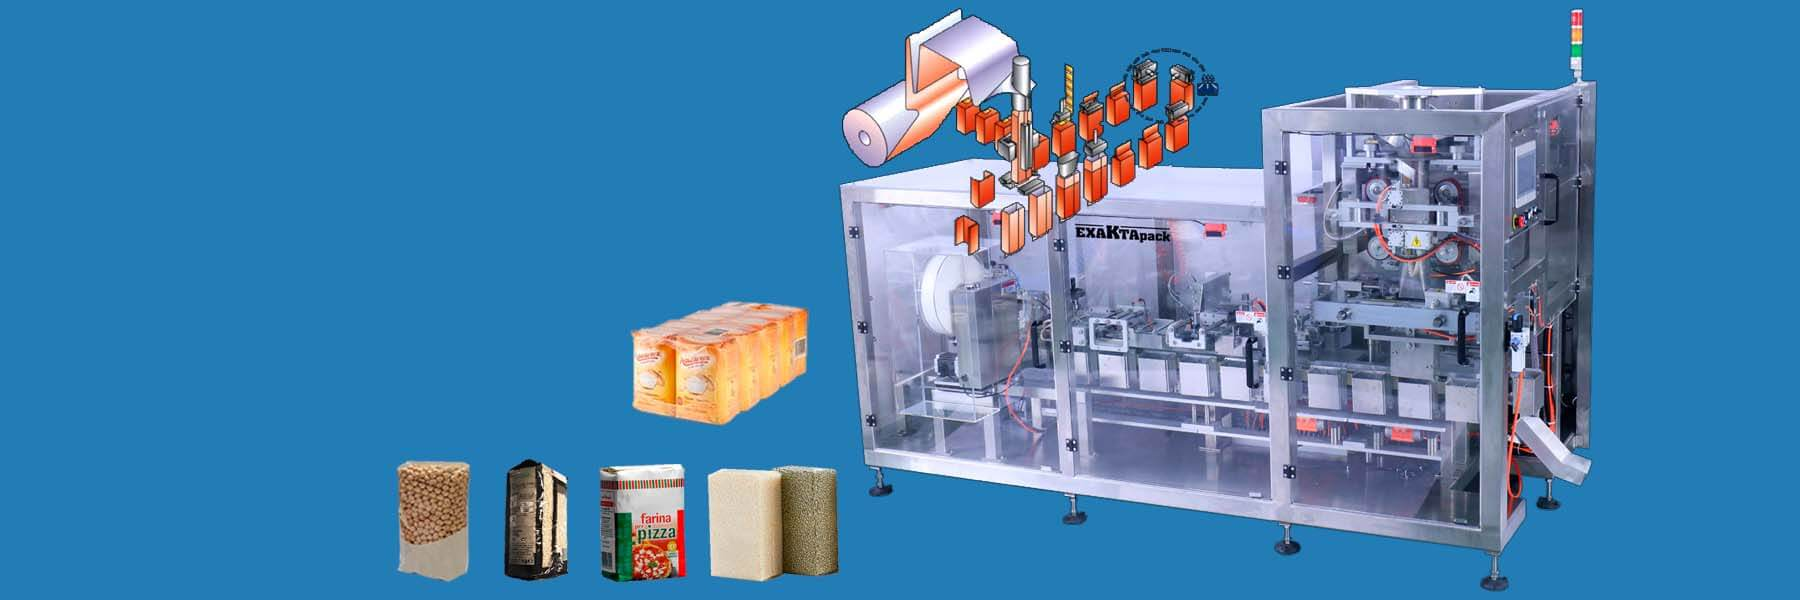 Vertical packaging machine with Carousel